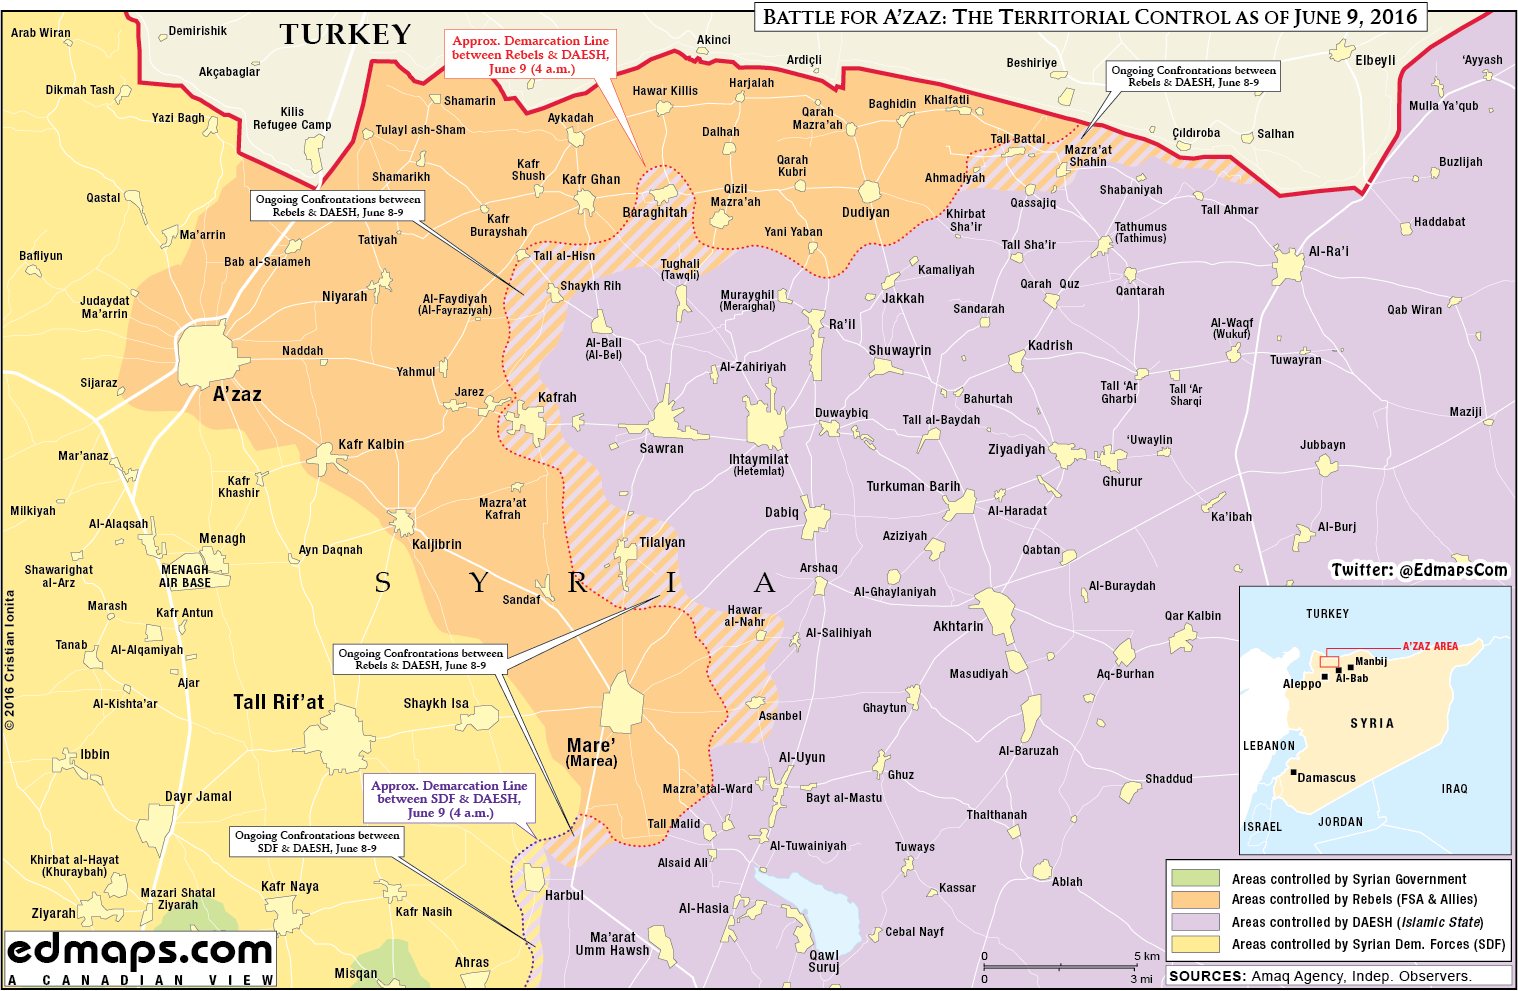 Military Situation in Northern Aleppo, Syria on June 9